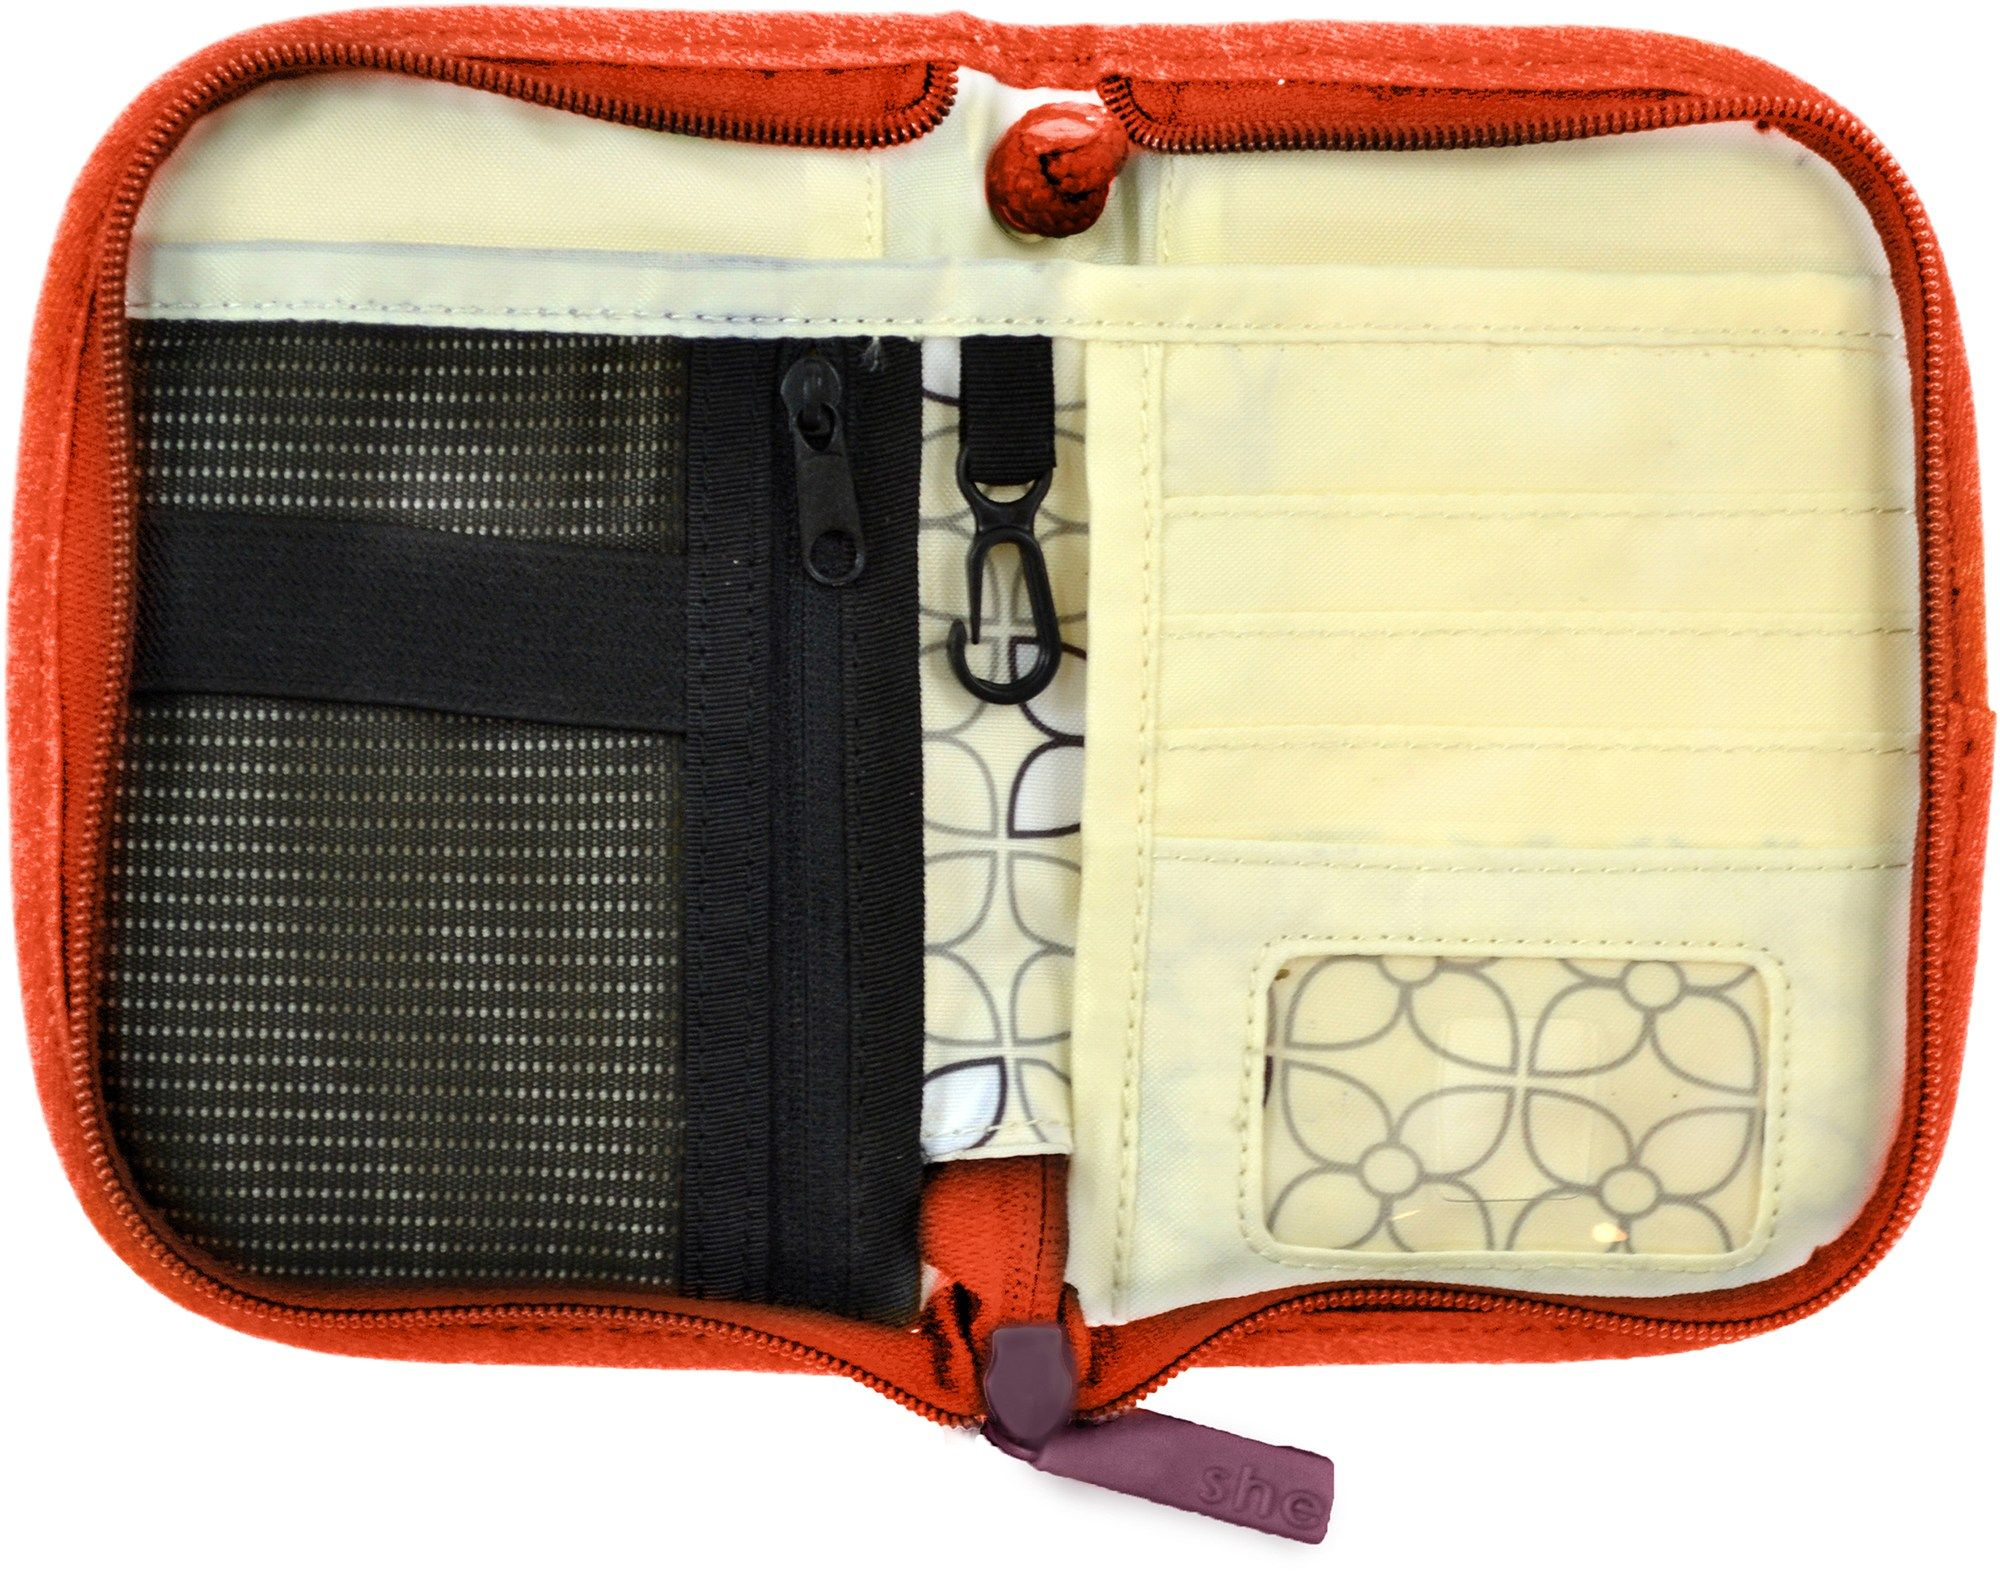 Sherpani Zoe String Cross-Body Wallet - 2014 Closeout